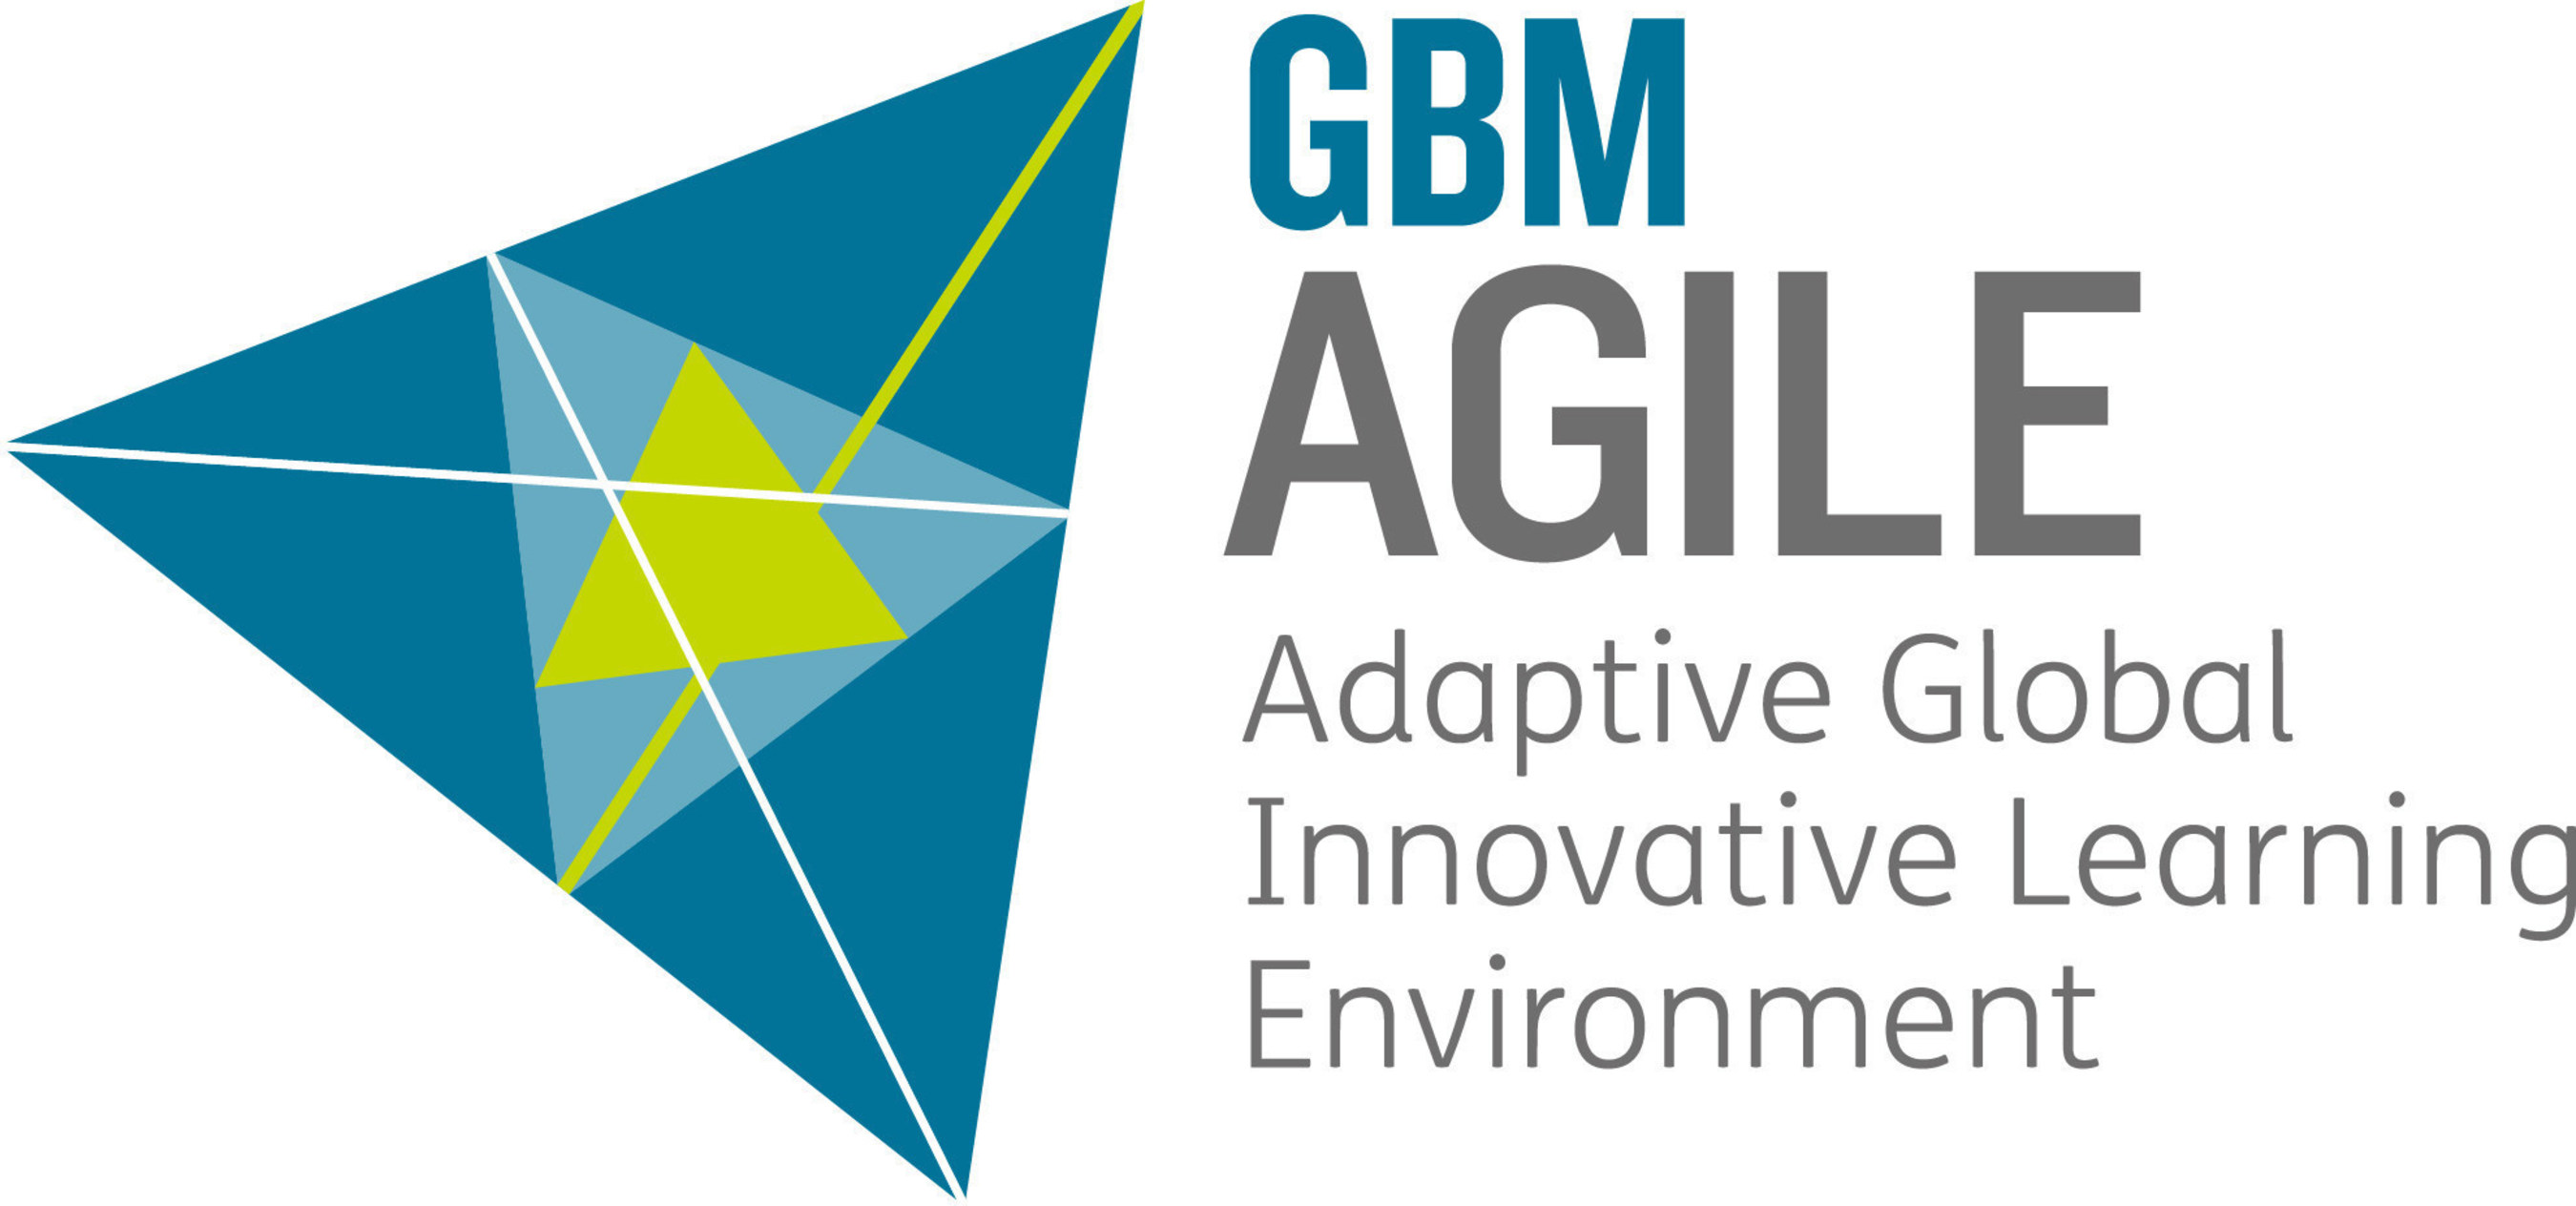 GBM AGILE (an adaptive, global, innovative learning environment)